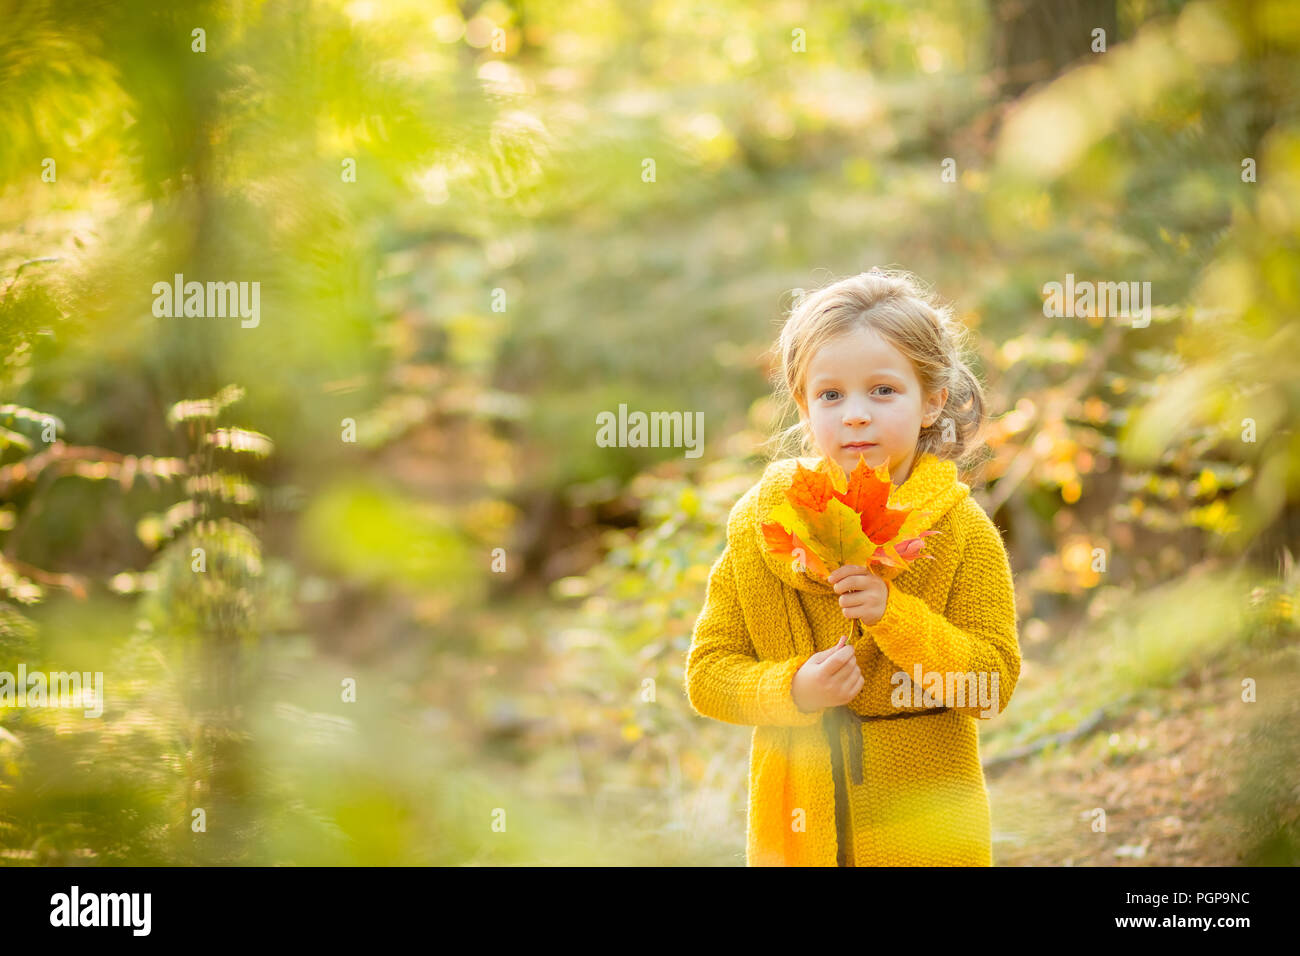 eb9f7f330 Happy autumn. A little girl in ayellow coat is playing with falling ...